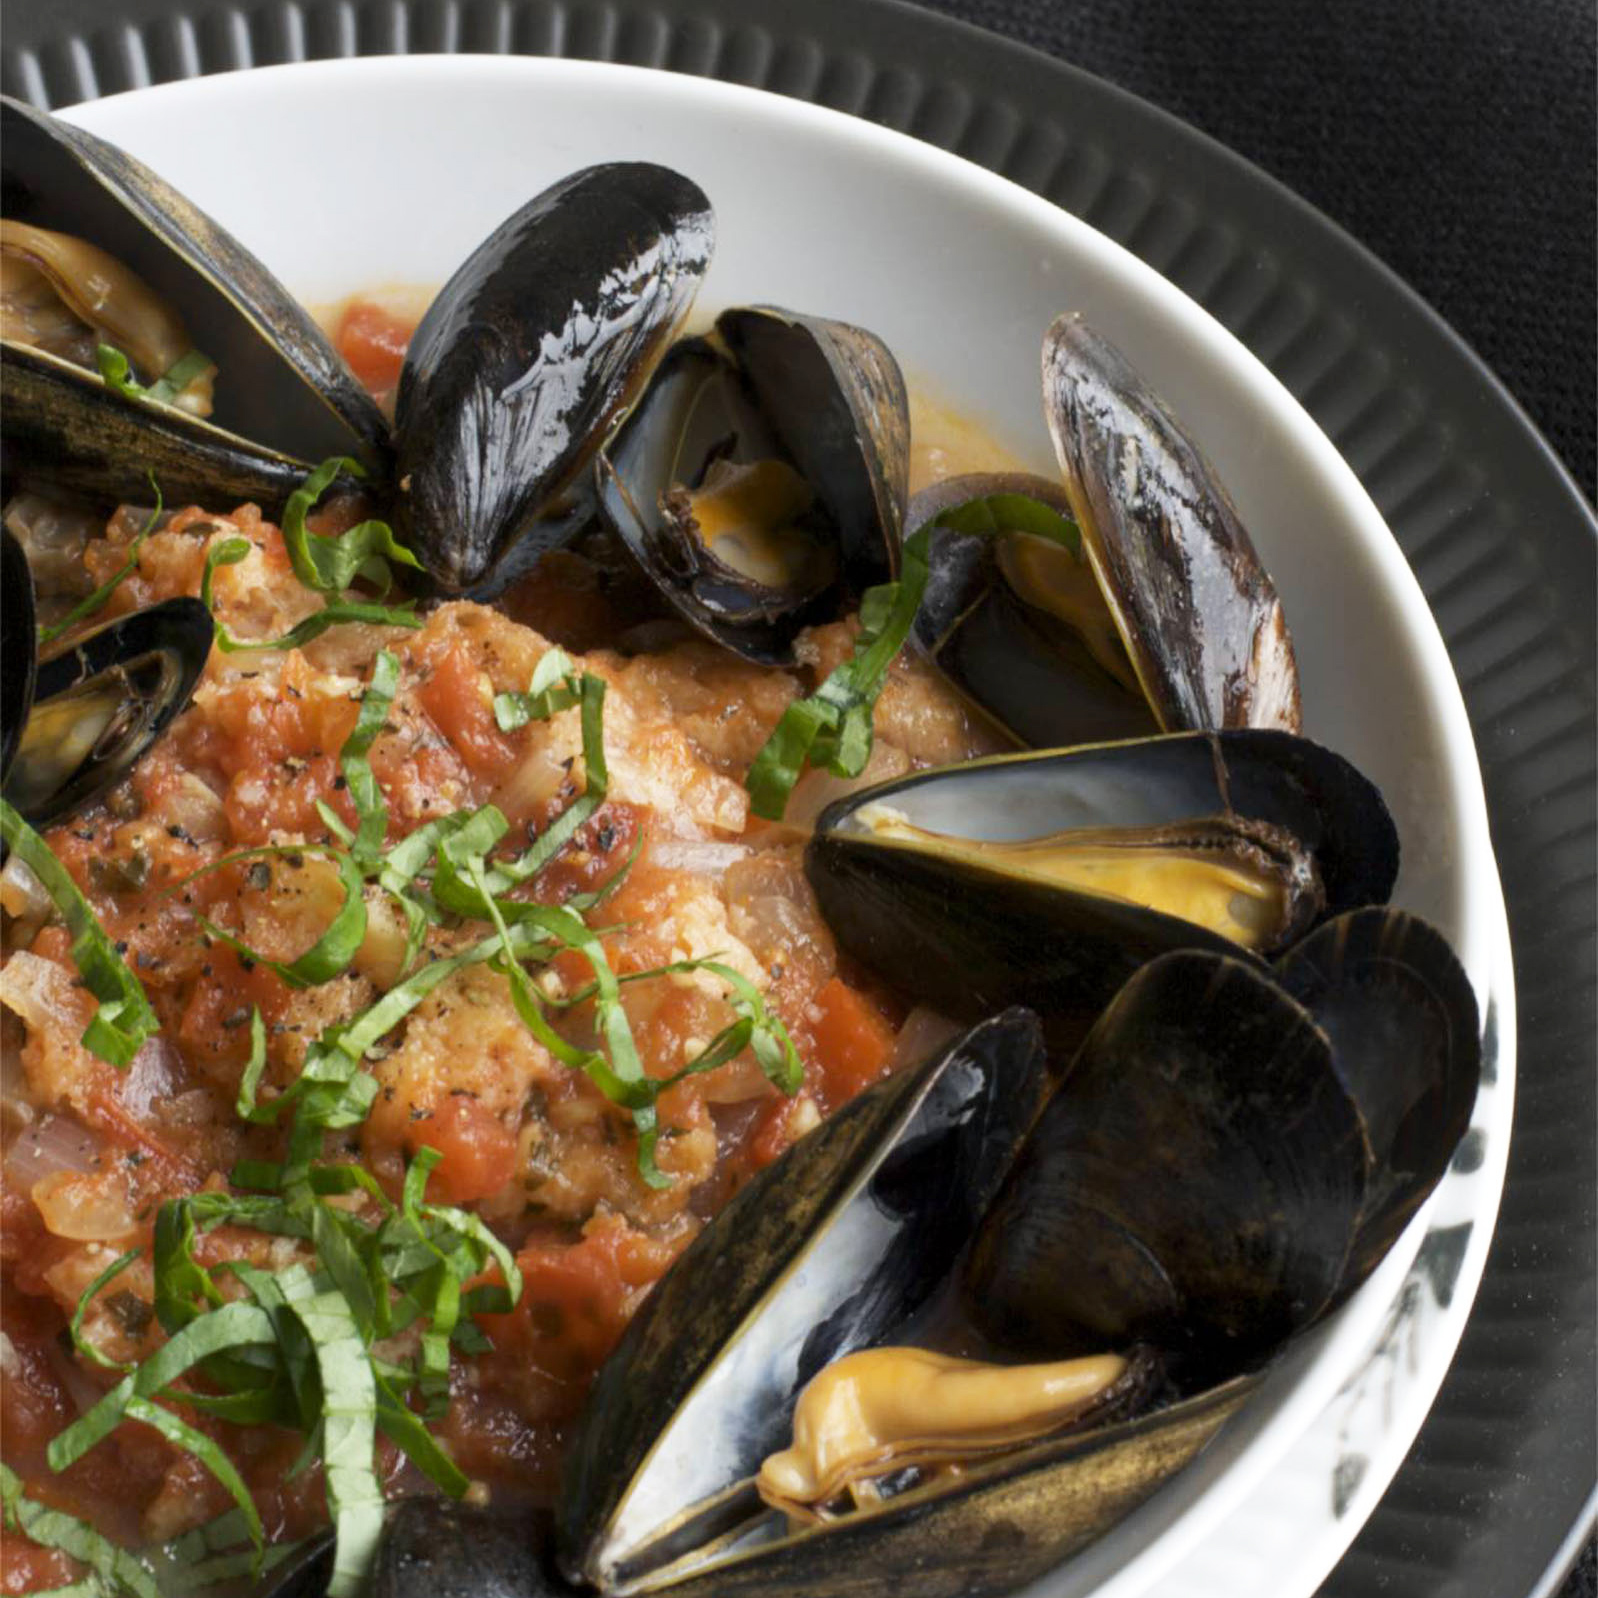 original-201204-r-qfs-tuscan-tomato-bread-soup-steamed-mussels.jpg